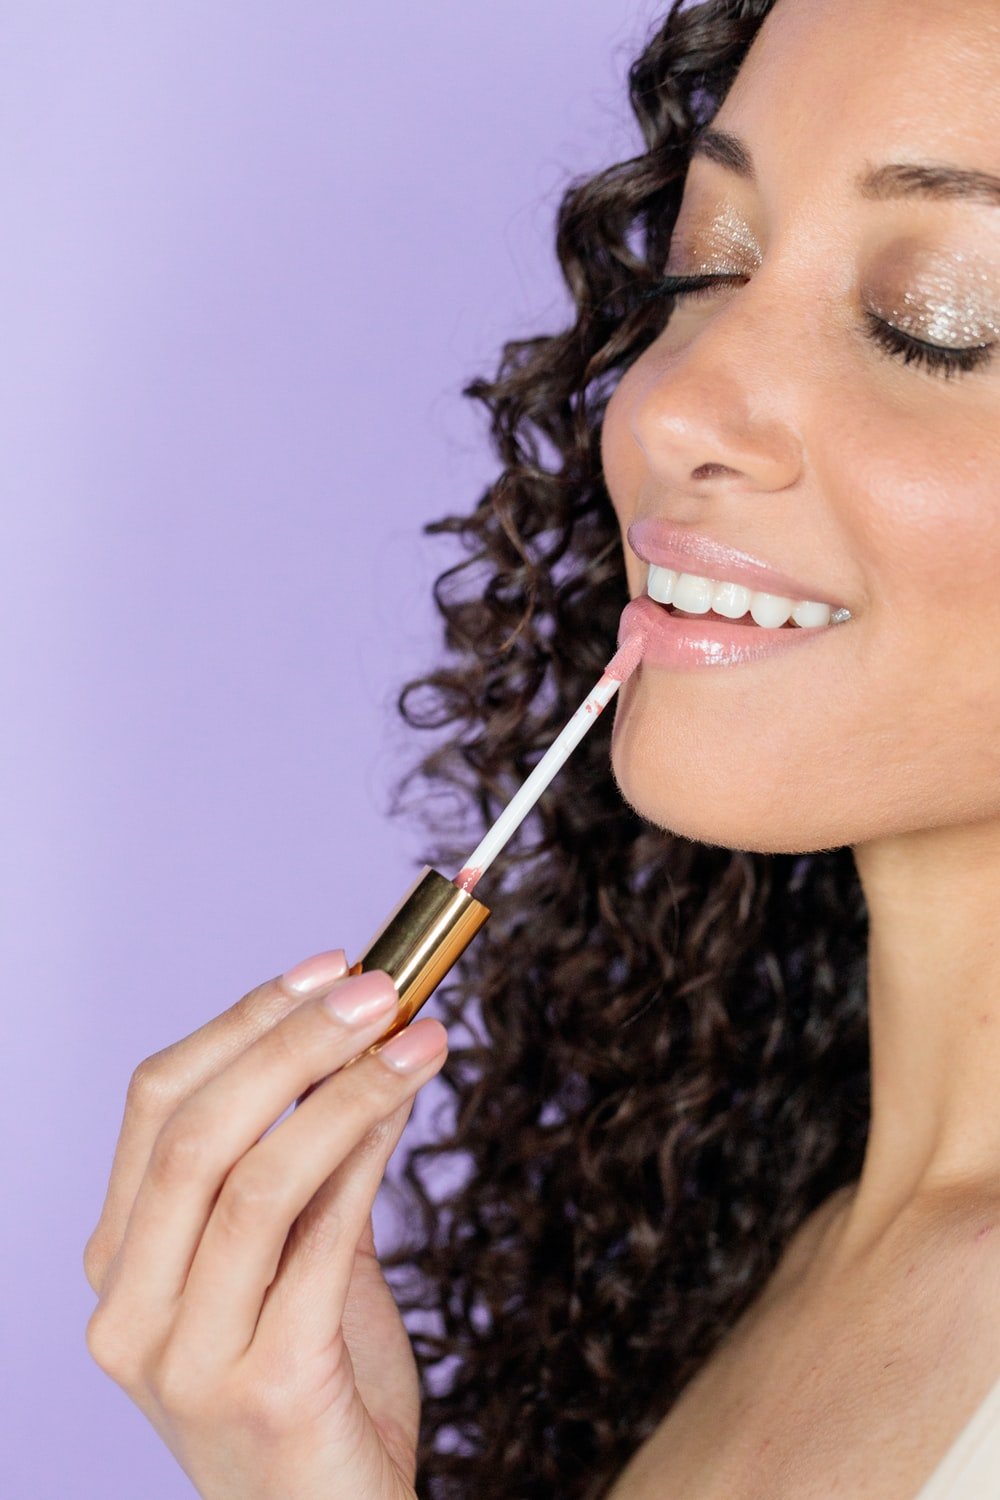 woman holding black and gold lipstick